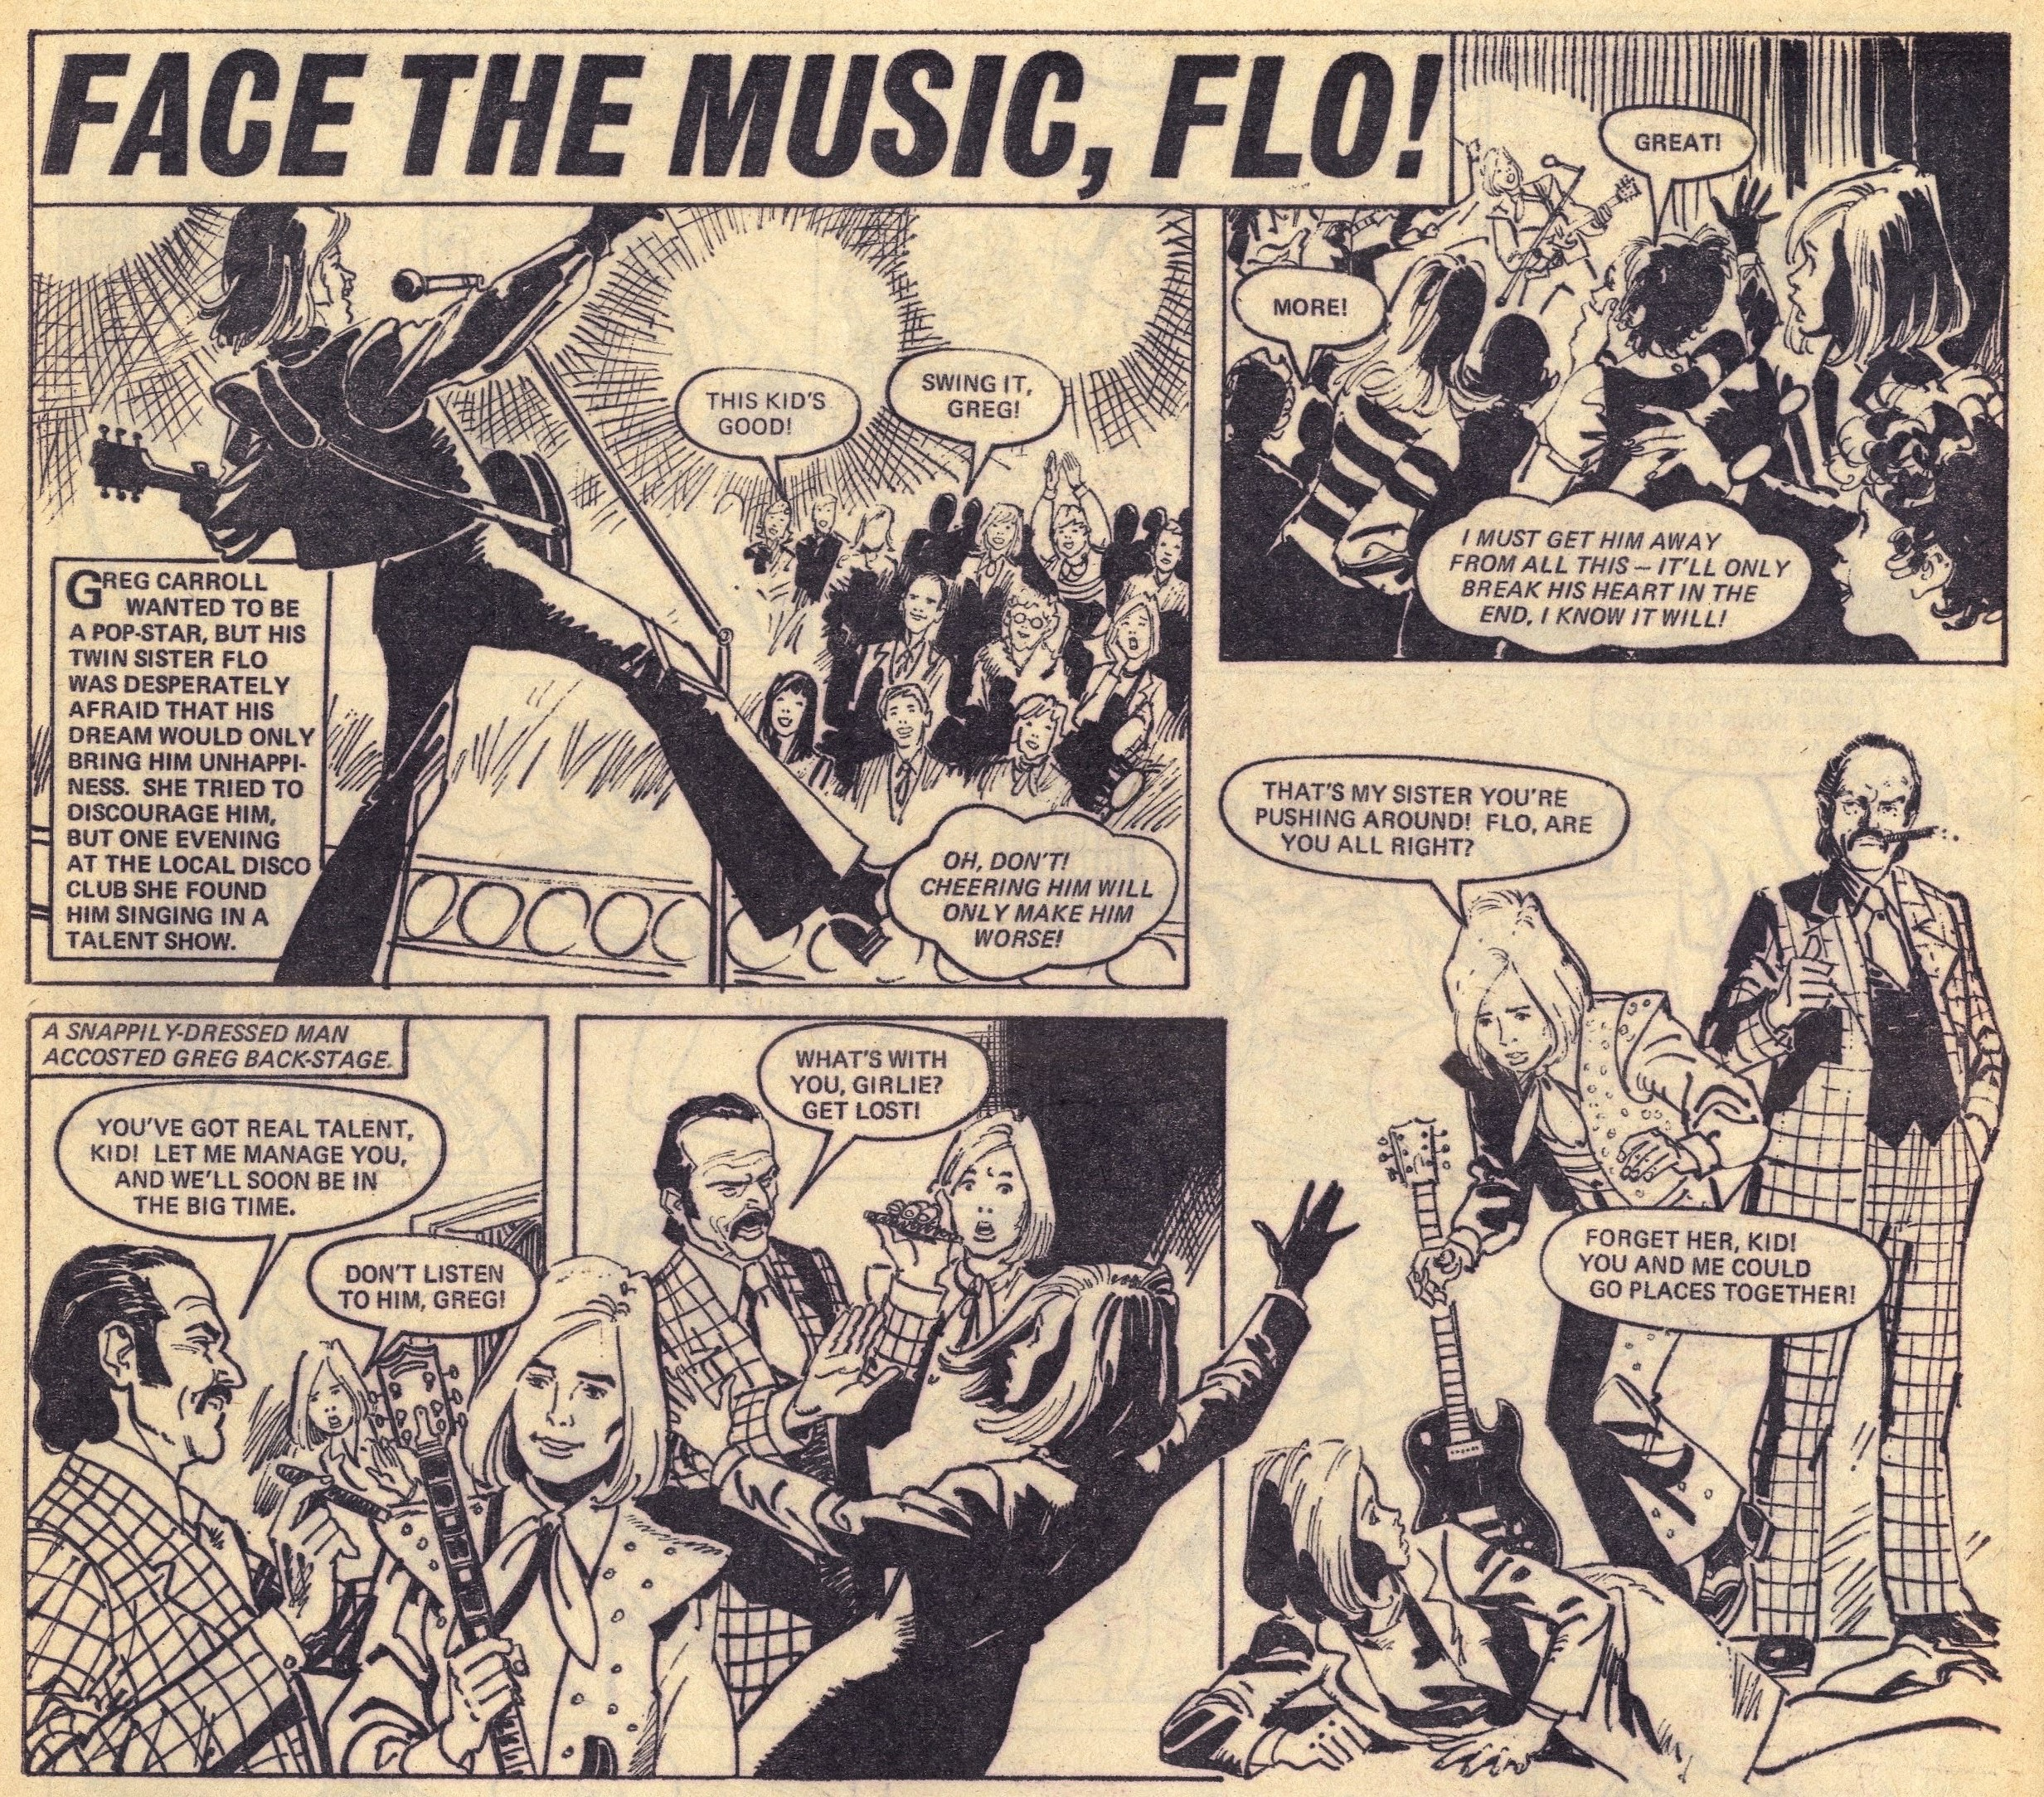 Face the Music, Flo!: Jim Baikie (artist)